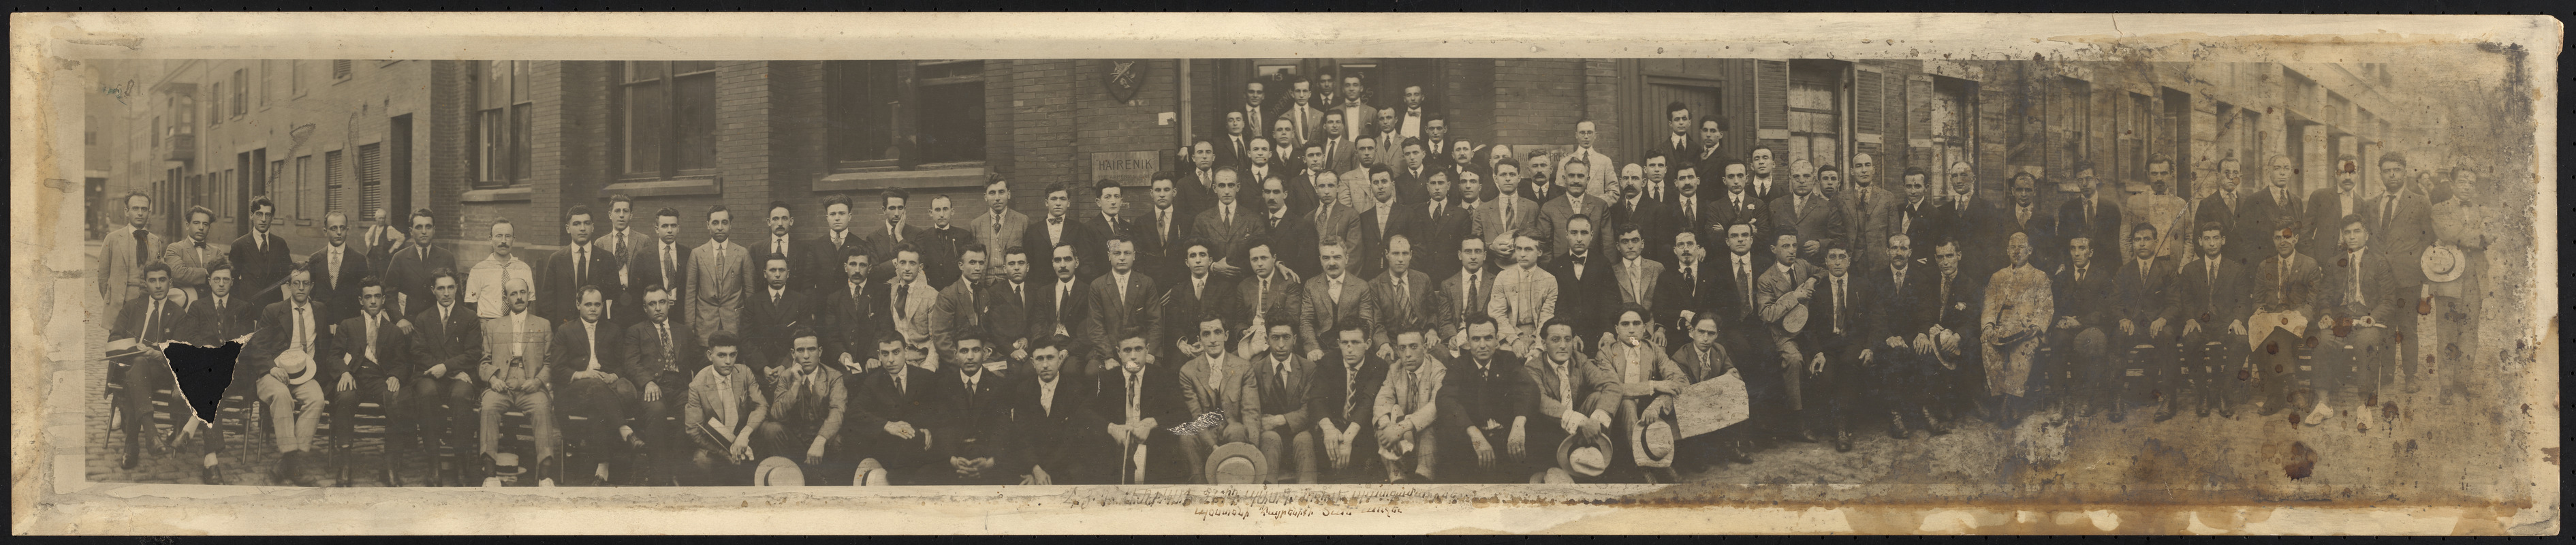 The delegates of the A.R.F. (Armenian Revolutionary Federation) America 26th convention in front of the Hairenik House in Boston